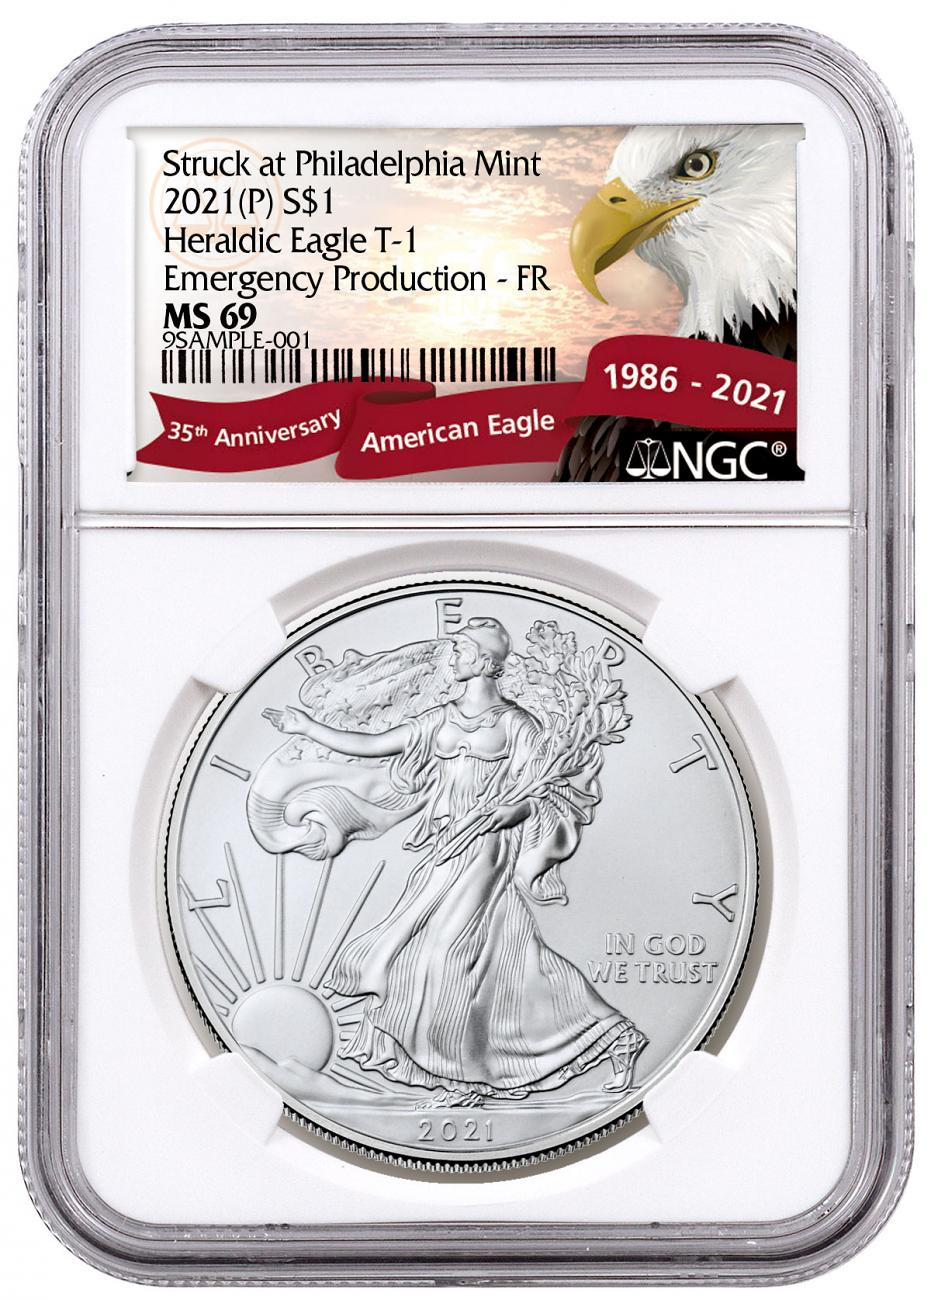 2021-(P) American Silver Eagle Struck at Philadelphia Mint - Emergency Production T-1 NGC MS69 FR Exclusive Eagle Label